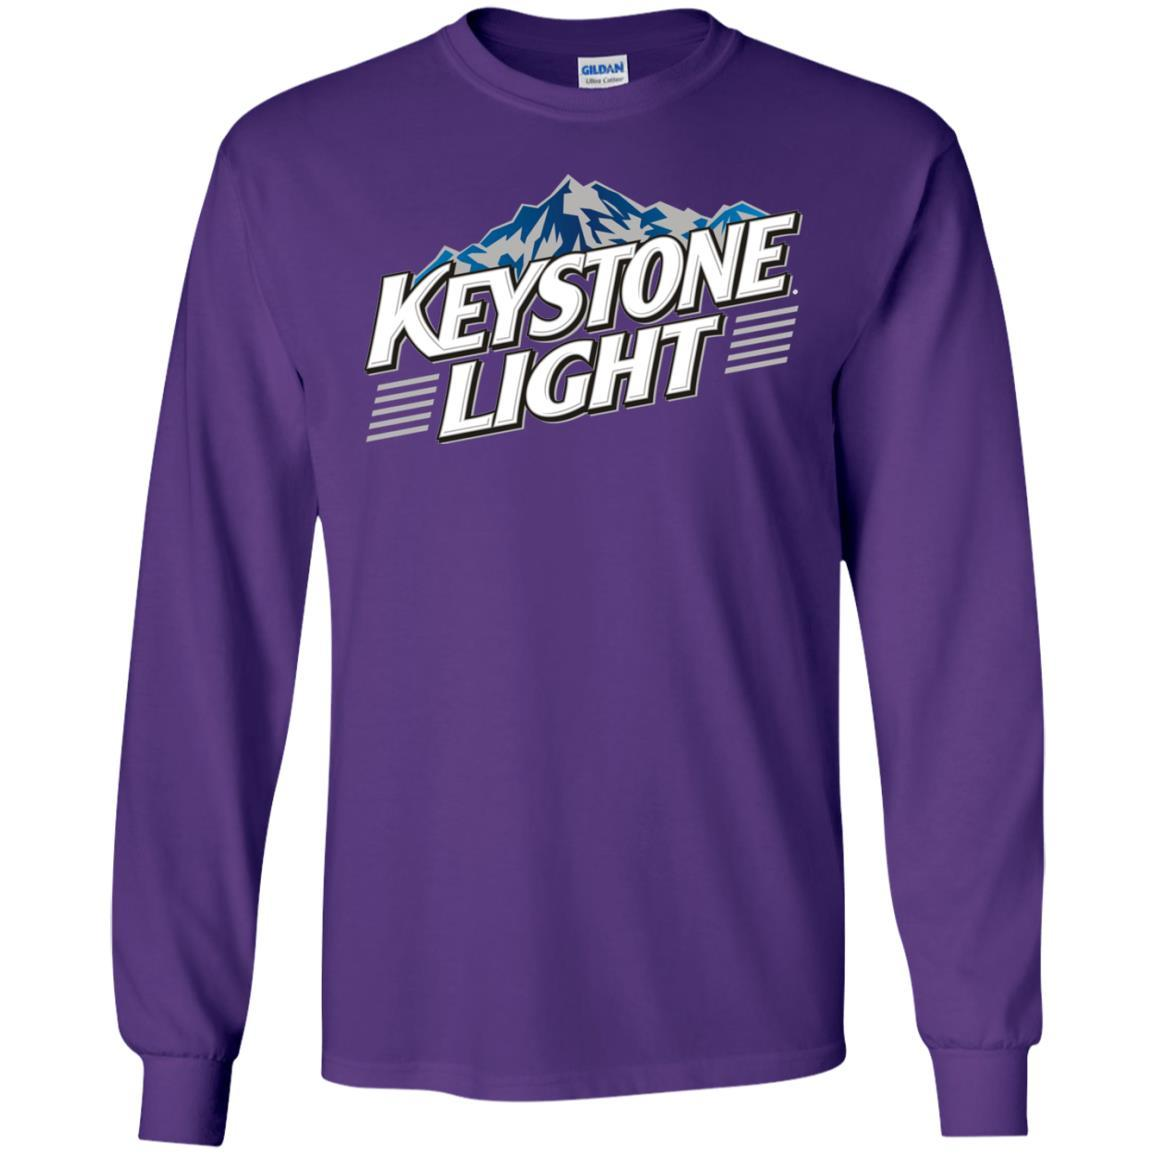 Keystone Light Beer - LS T-Shirt Style / Color / Size